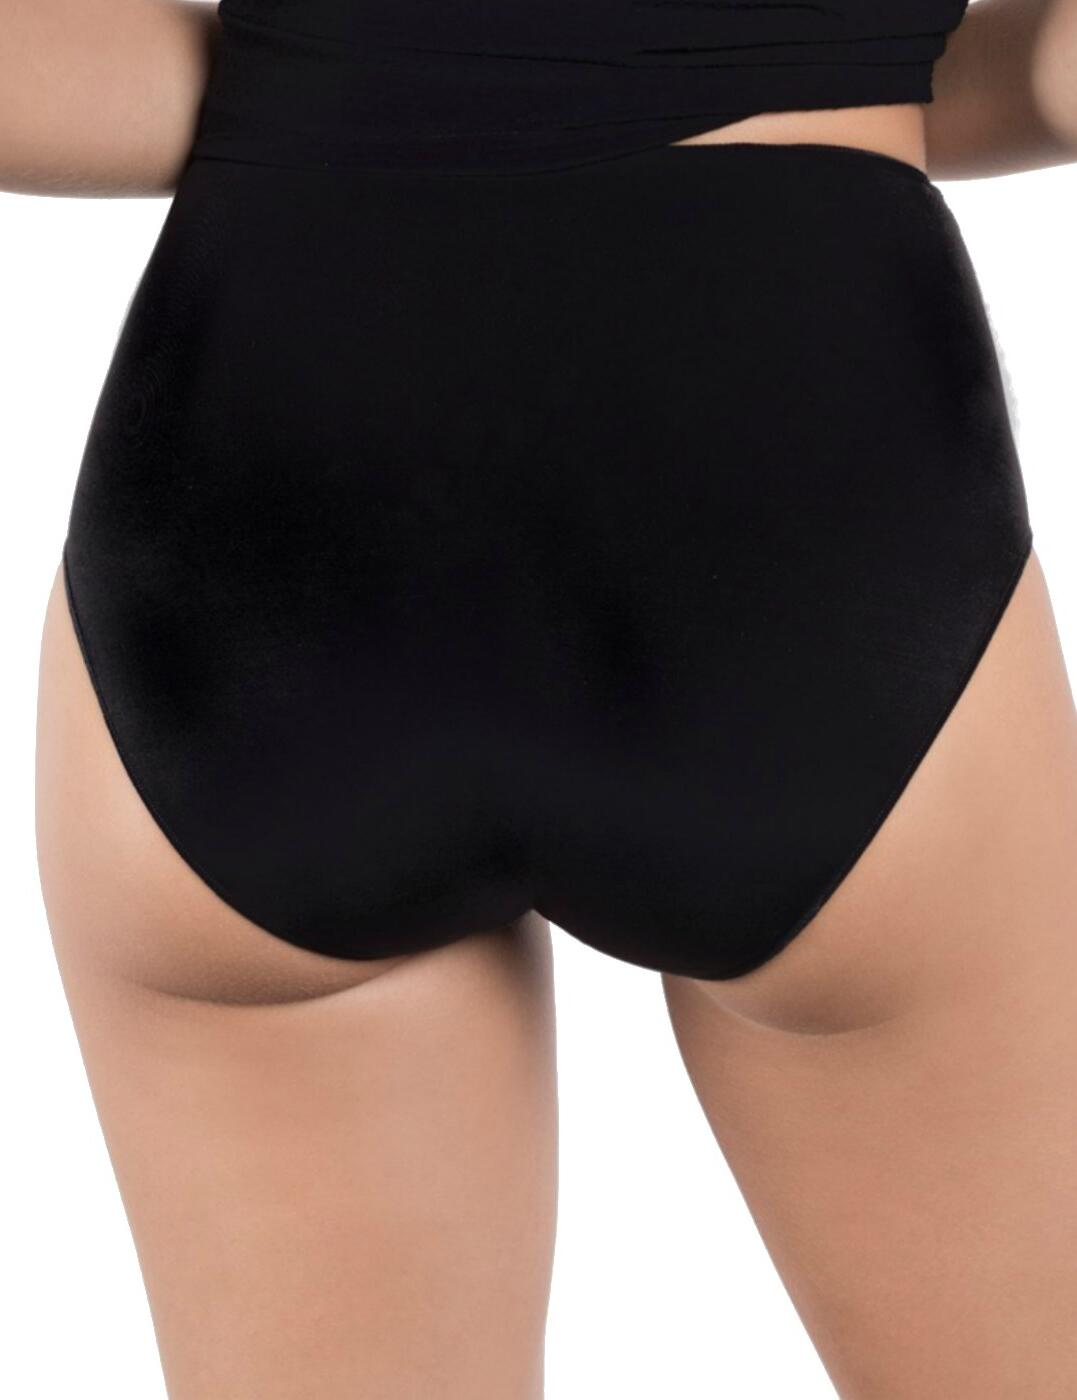 Maison Lejaby Les Invisibles High Waist Shaping Brief Knickers 5304P